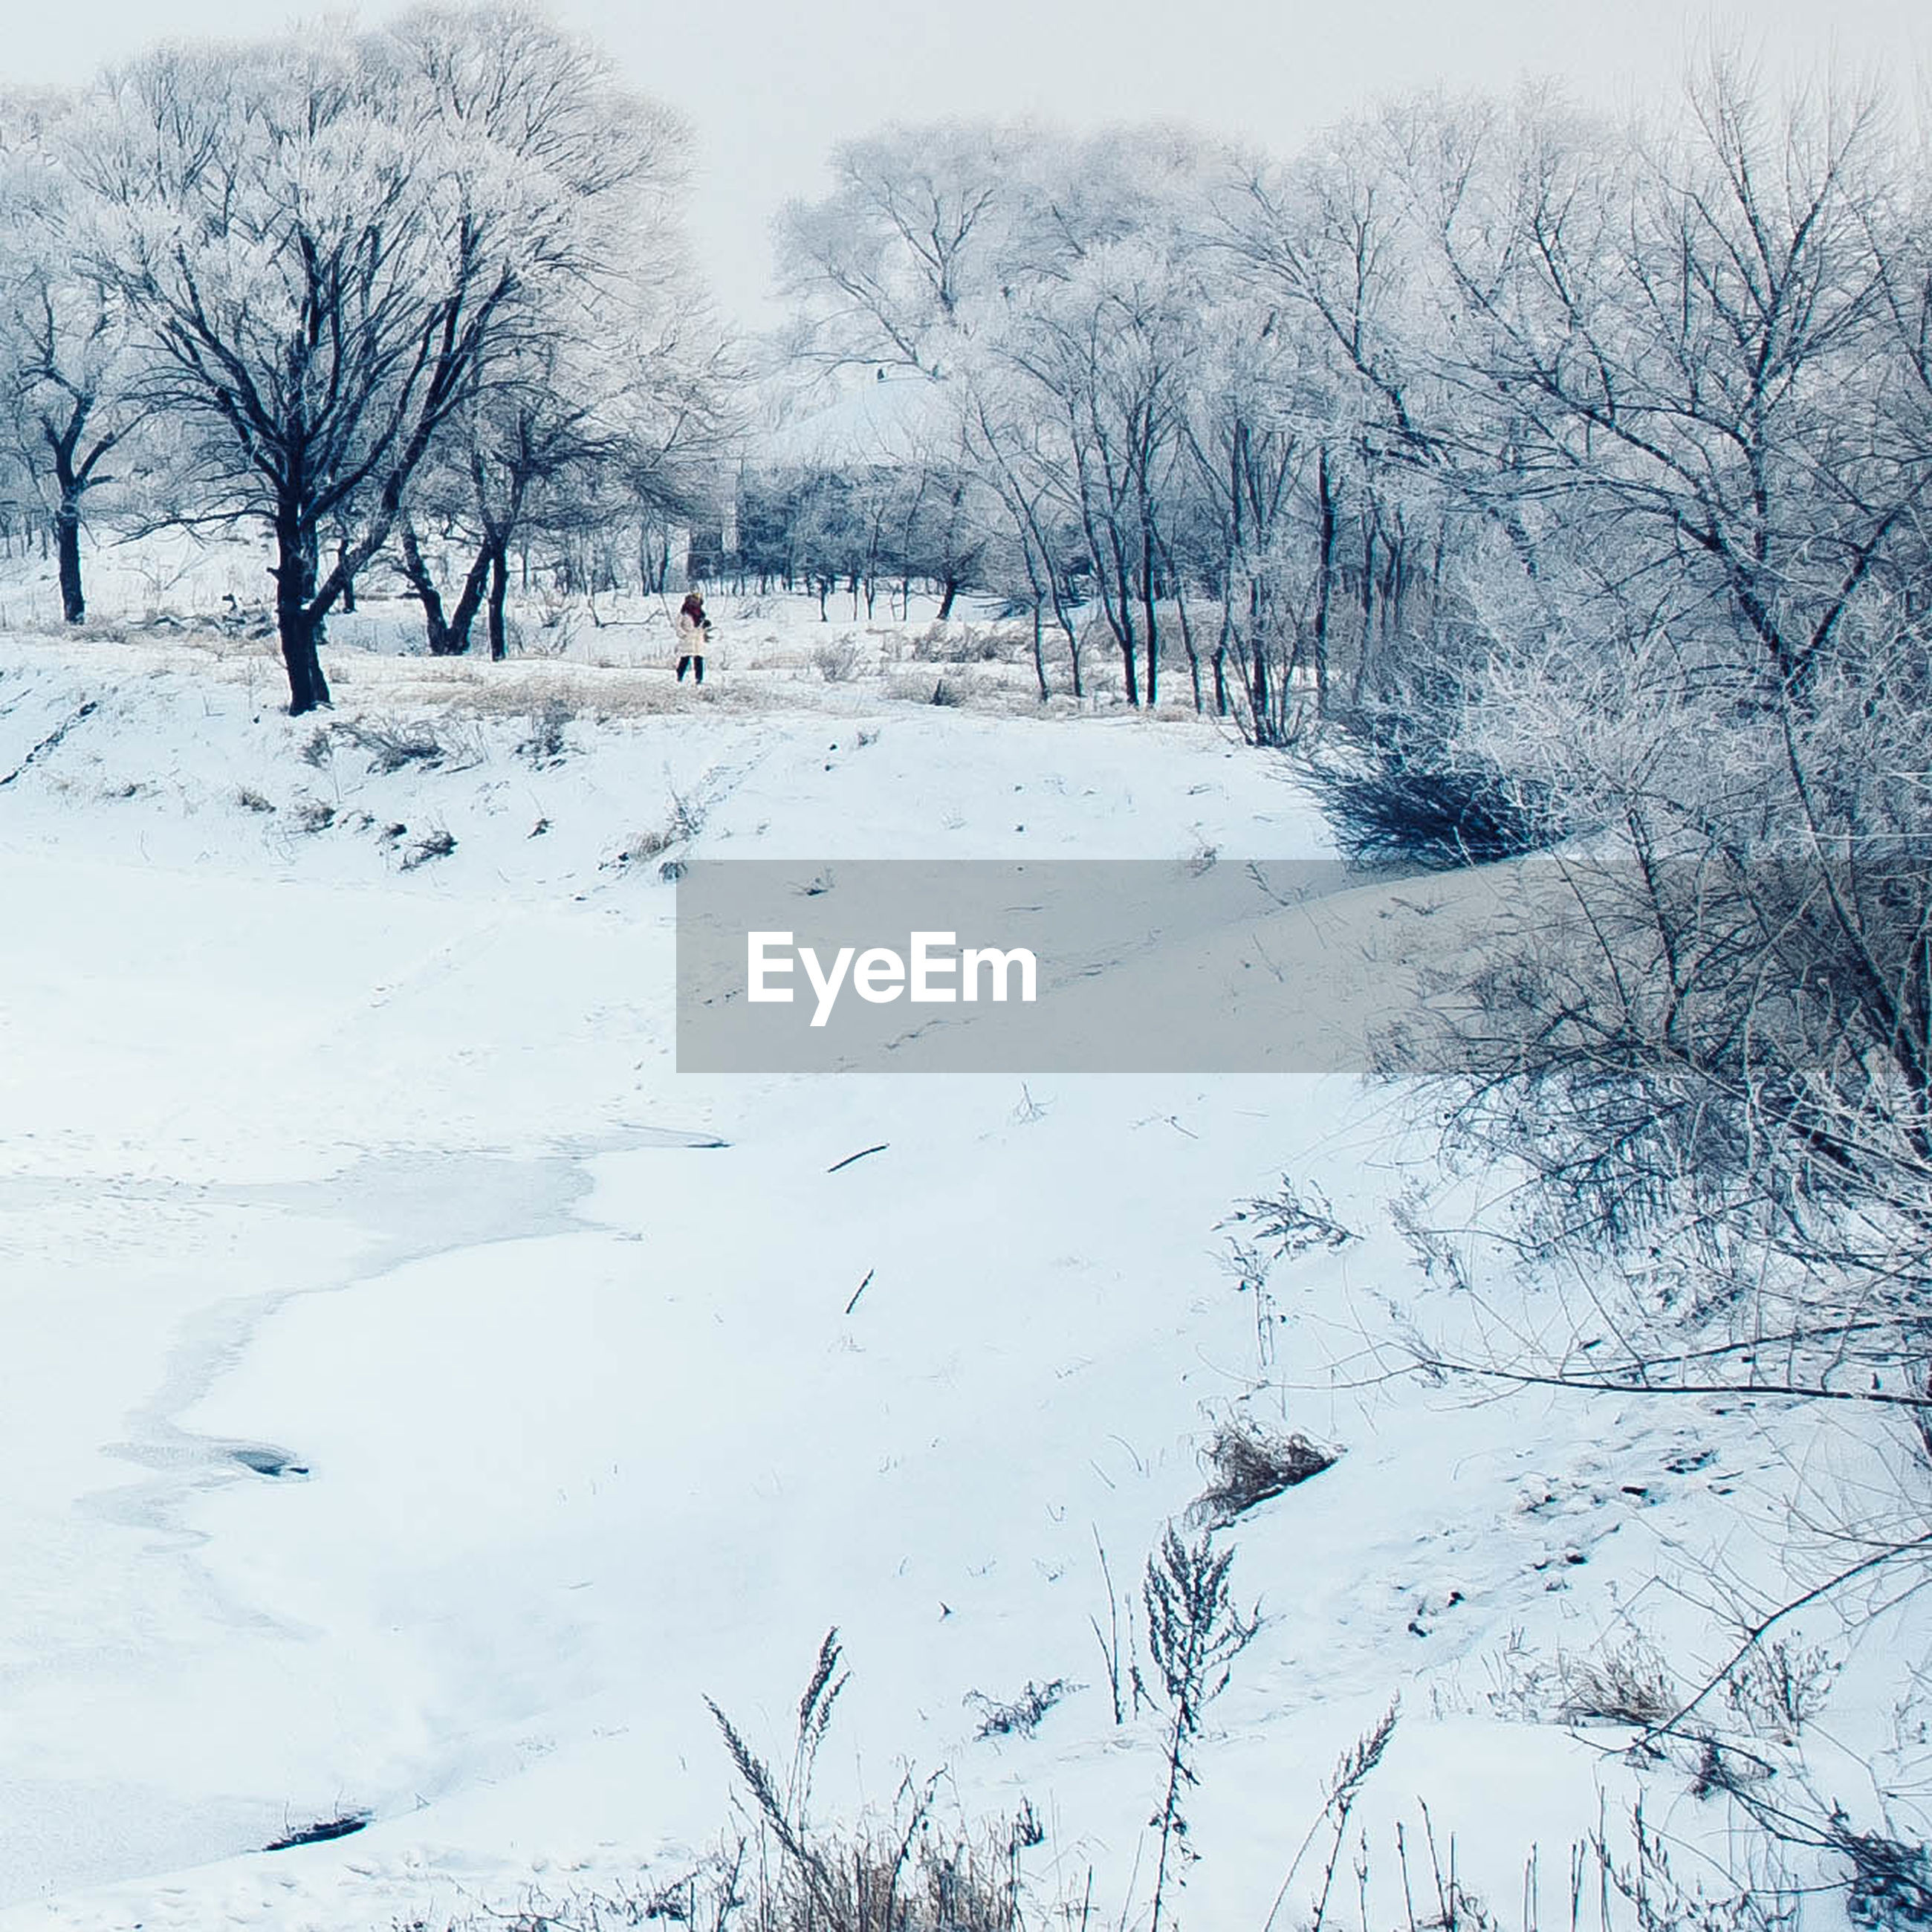 snow, winter, cold temperature, season, tree, weather, bare tree, covering, tranquility, tranquil scene, nature, landscape, white color, field, beauty in nature, frozen, branch, scenics, covered, day